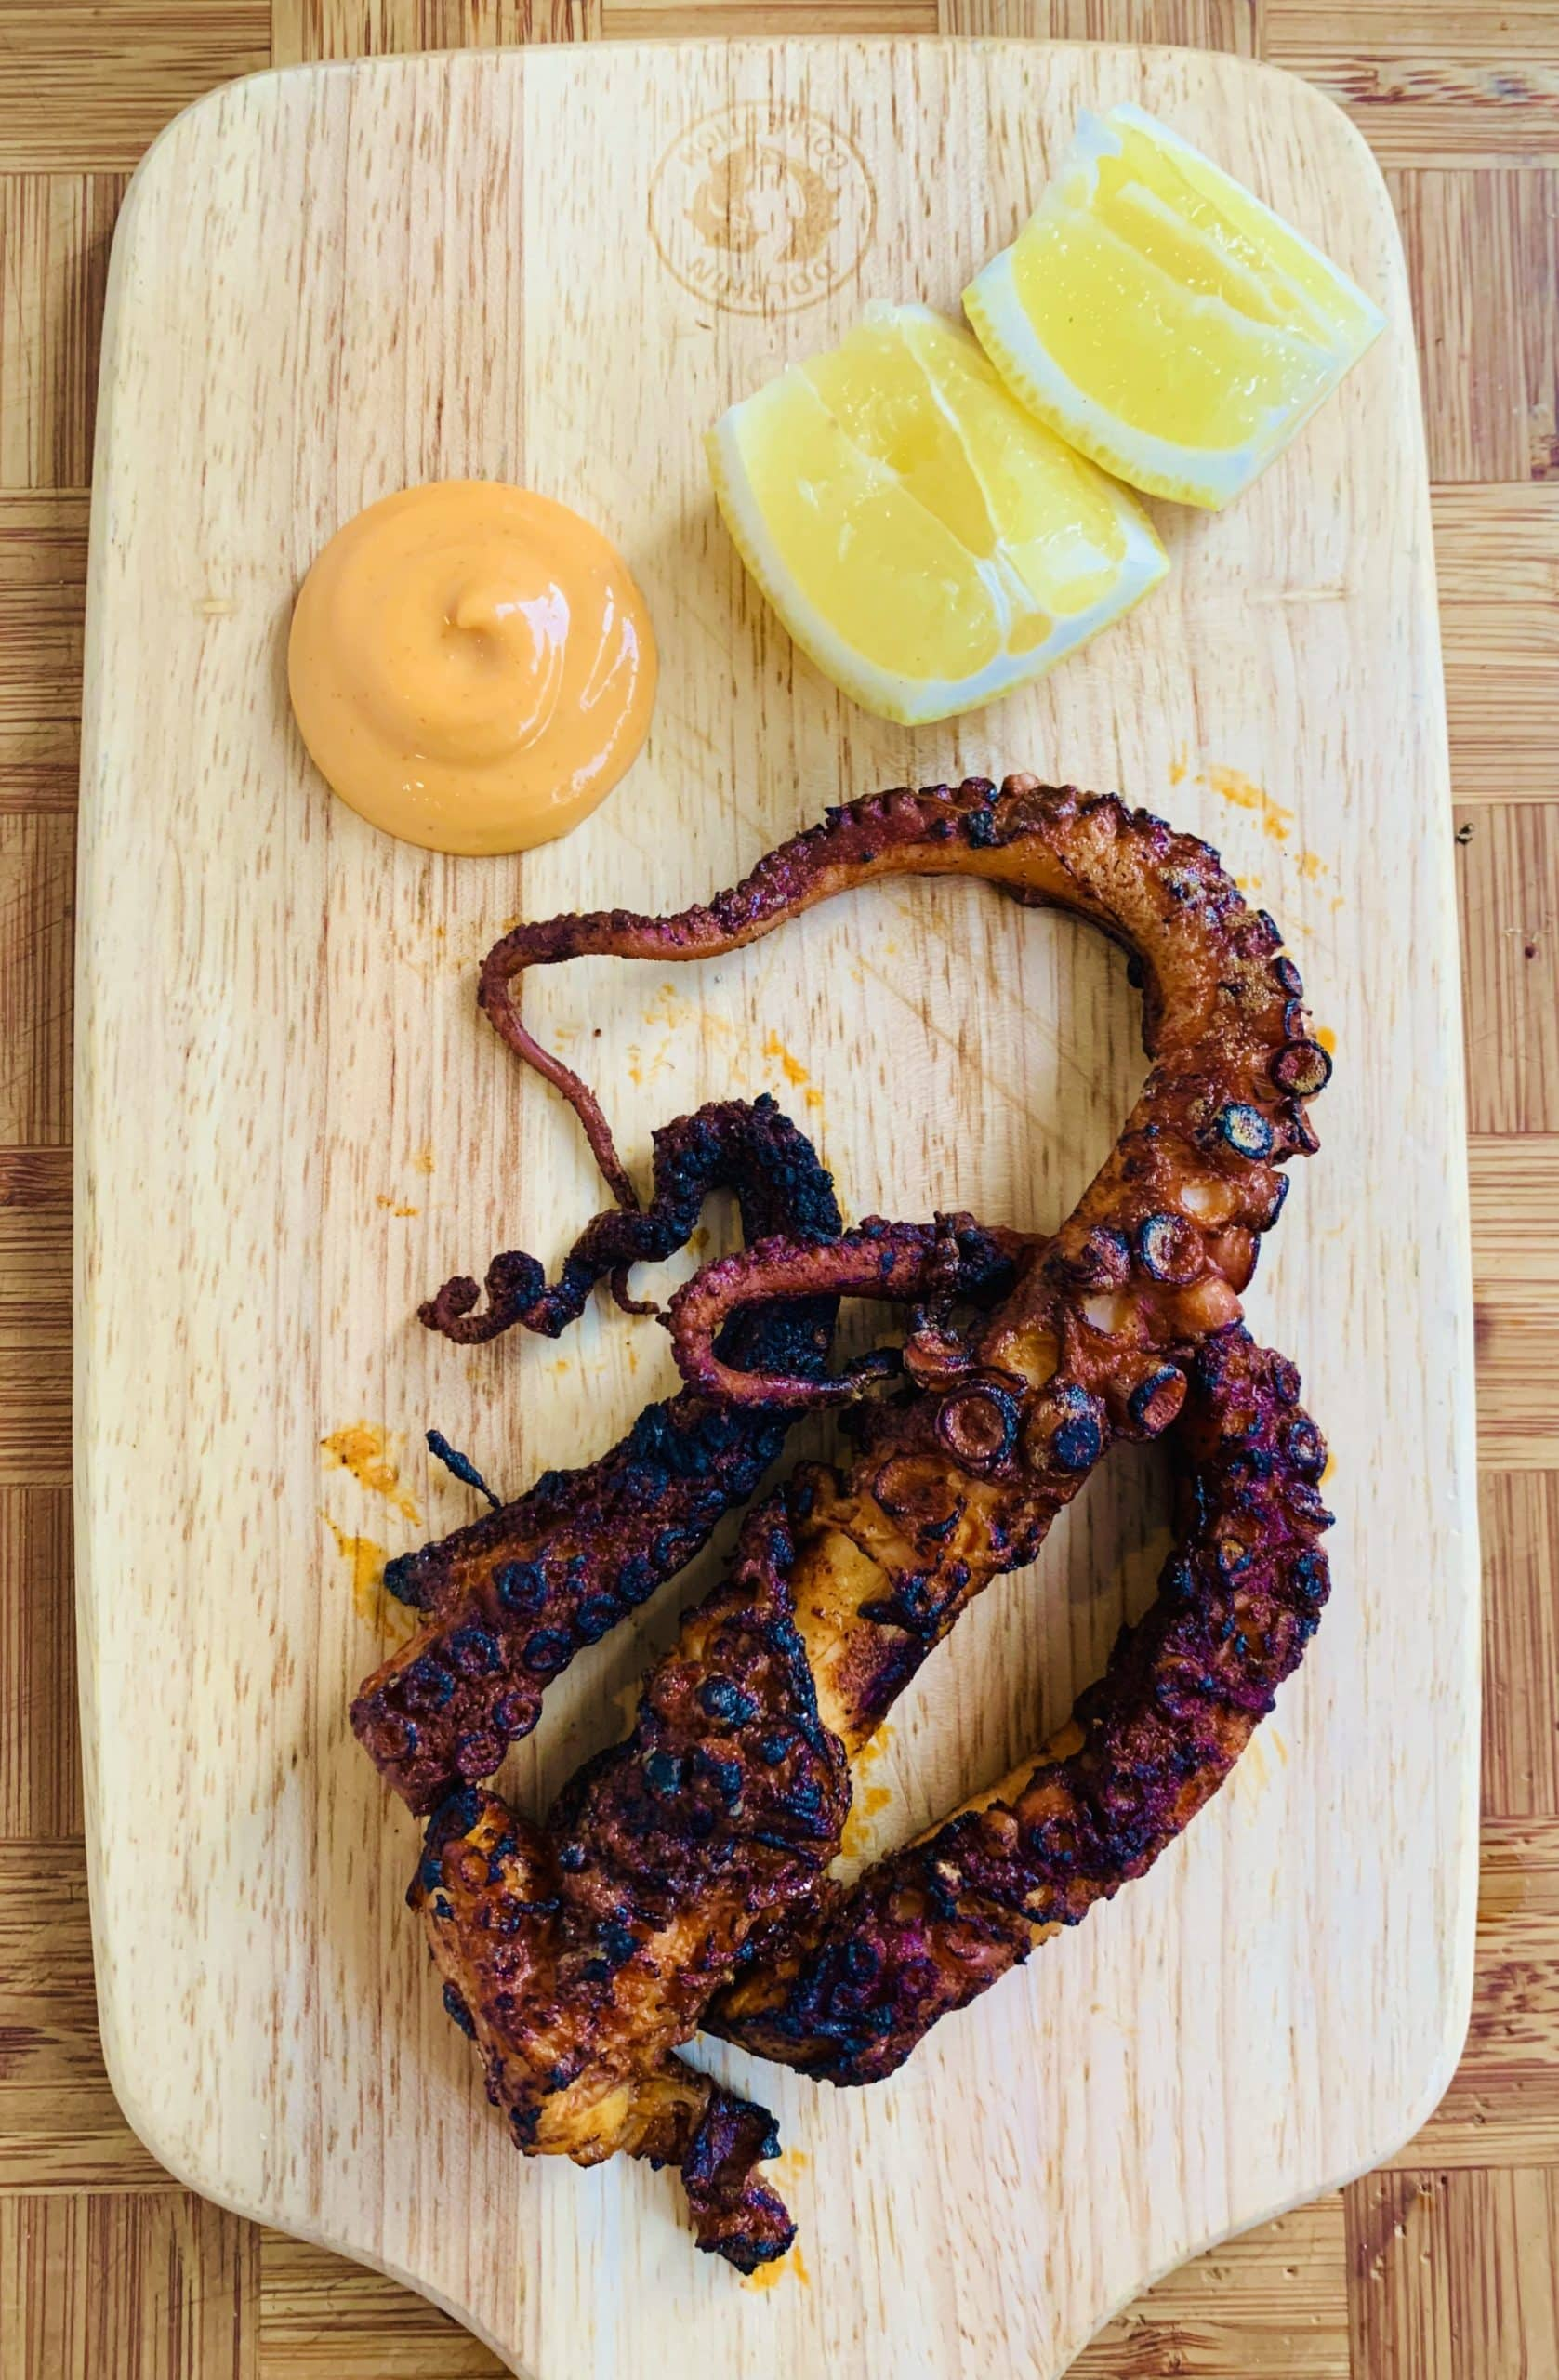 Smoky Paprika Octopus 'w' Sriracha & ChillaxBBQ Dinner